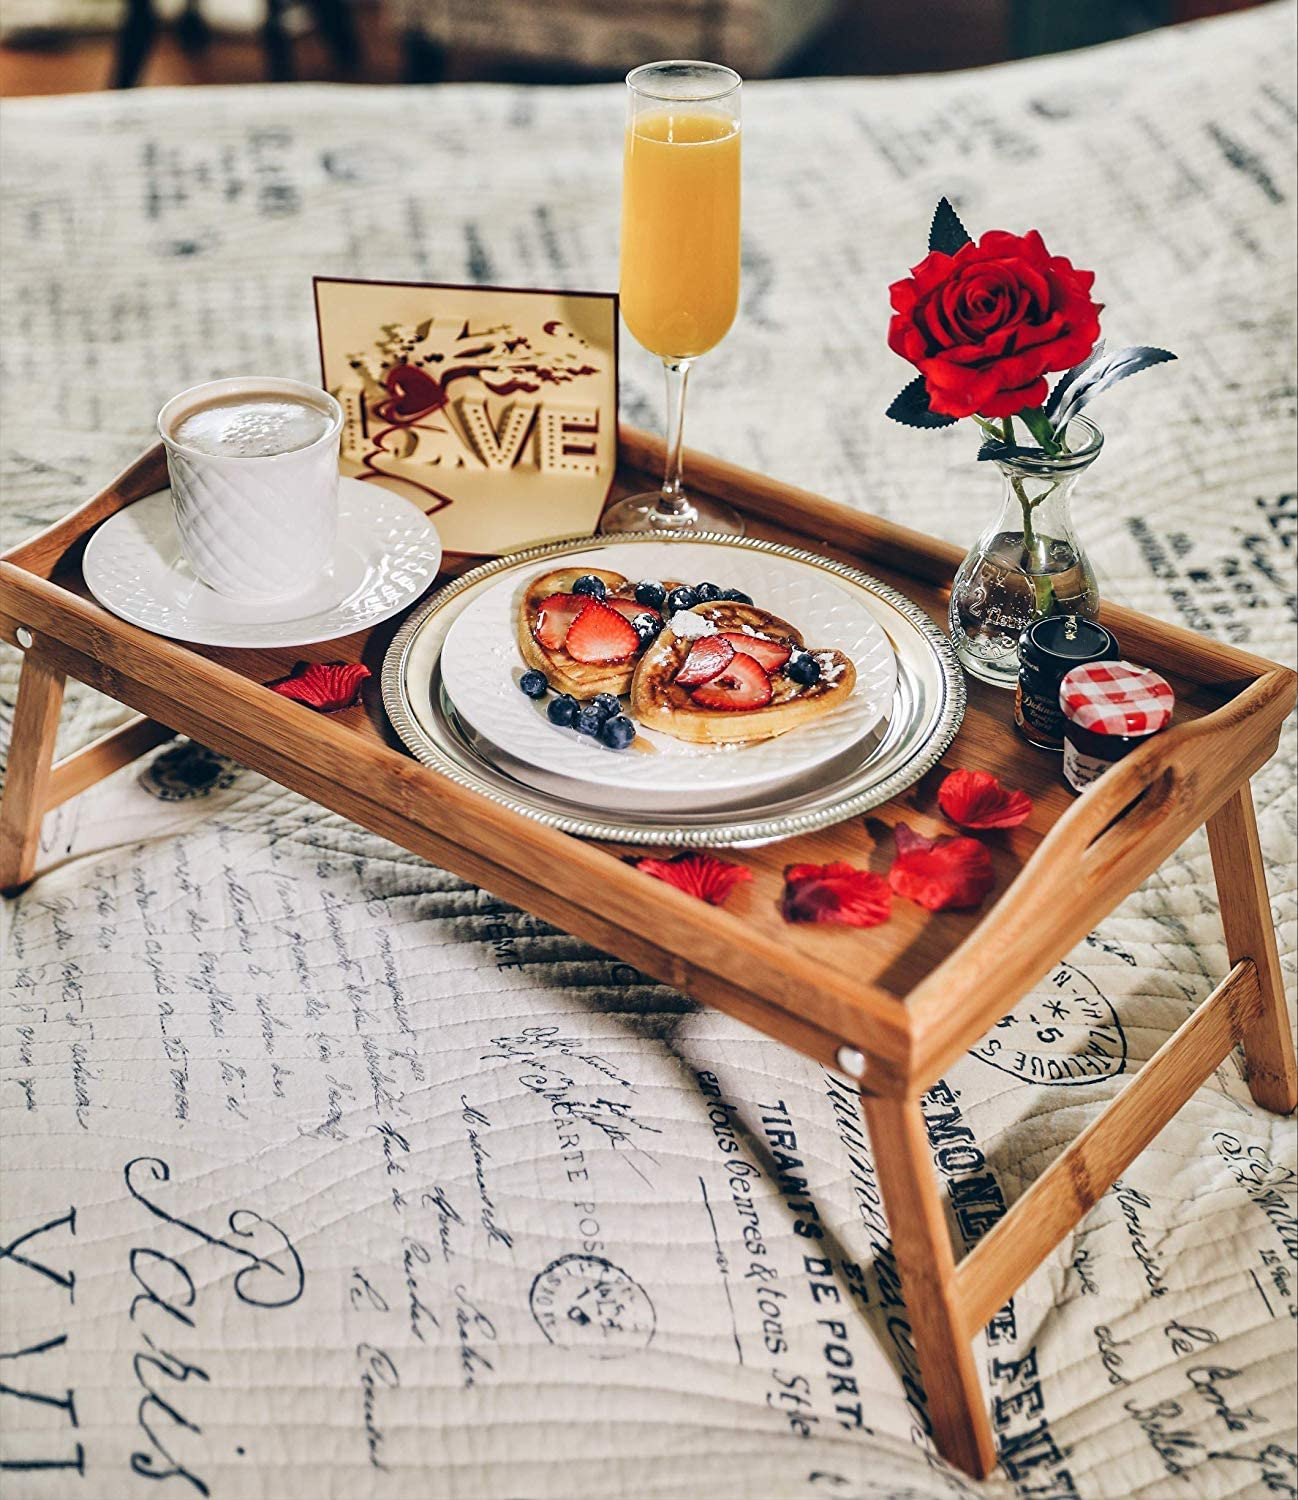 Breakfast in Bed Romance-in-a-Box   Romantic Romantic Wedding Birthday Gifts Basket with Breakfast Tray Table and Rose Petals